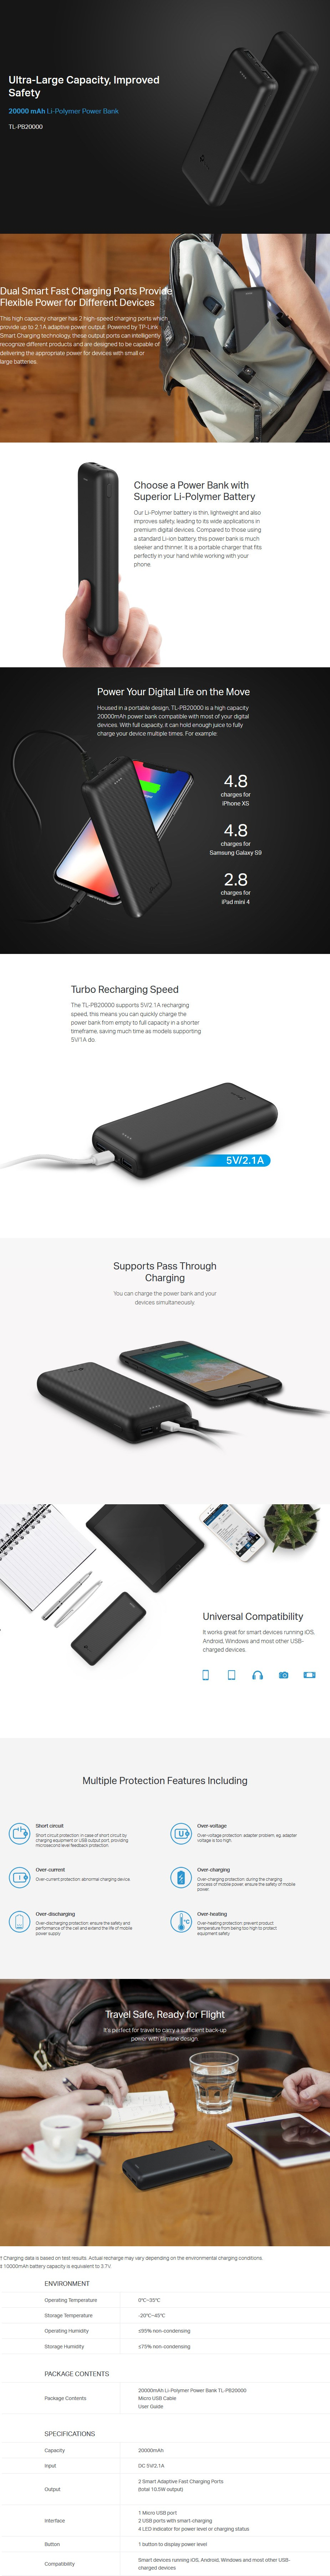 TP-Link TL-PB20000 20000mAh USB Power Bank - Desktop Overview 1